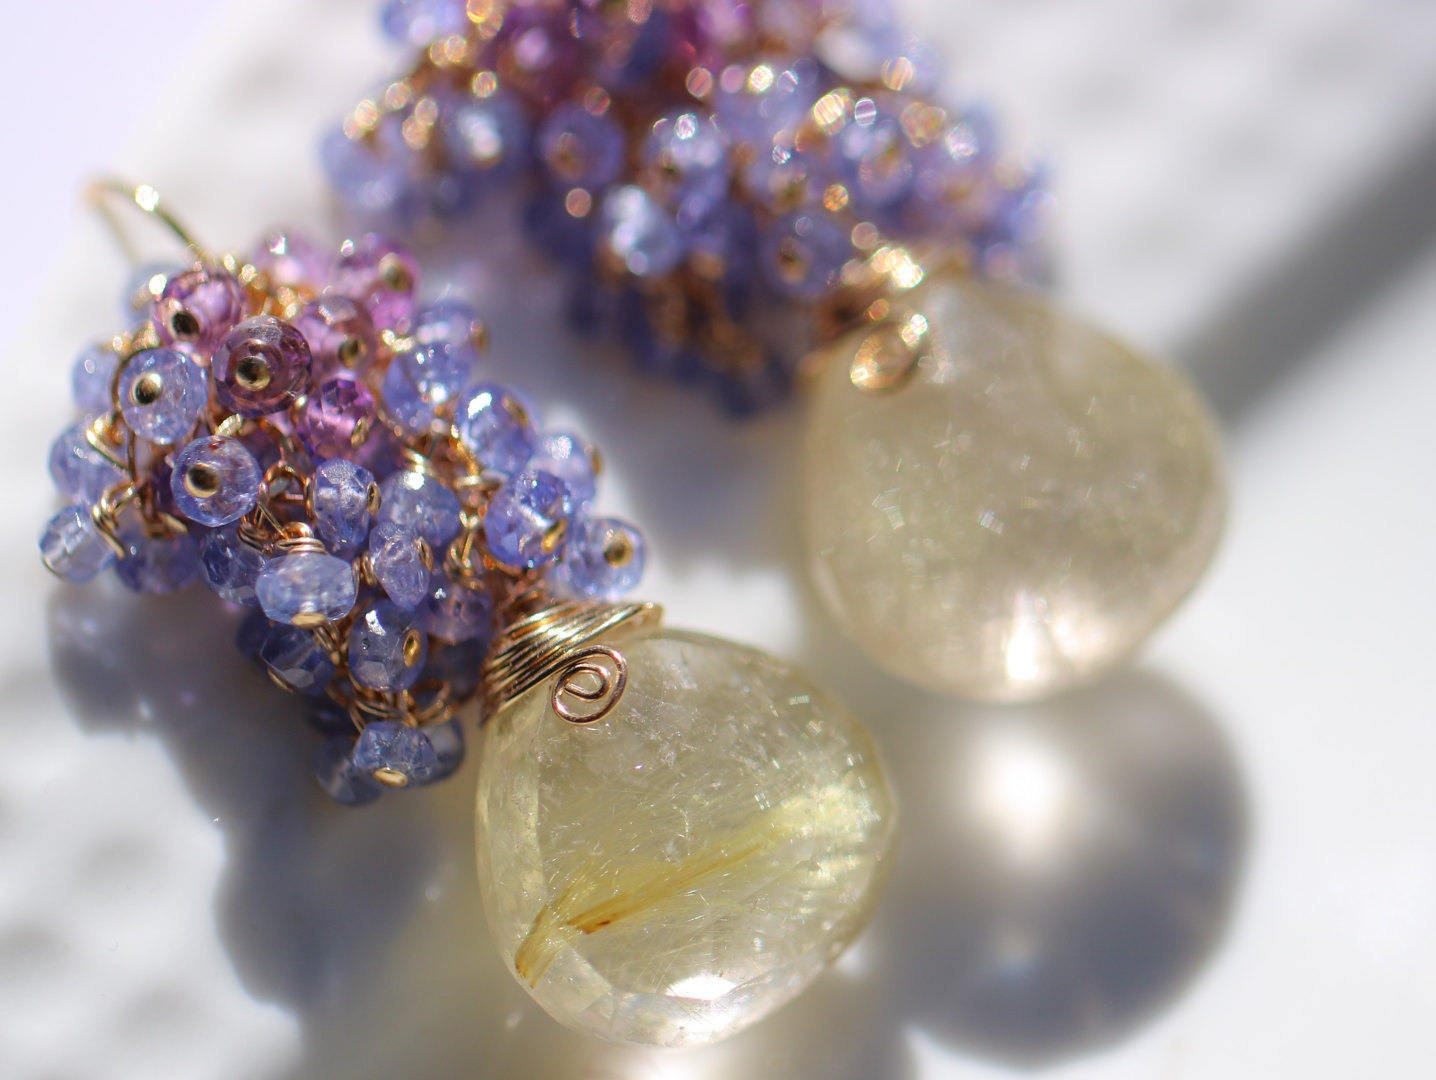 Tazanite and amethyst cluster earrings with golden for Golden rutilated quartz jewelry